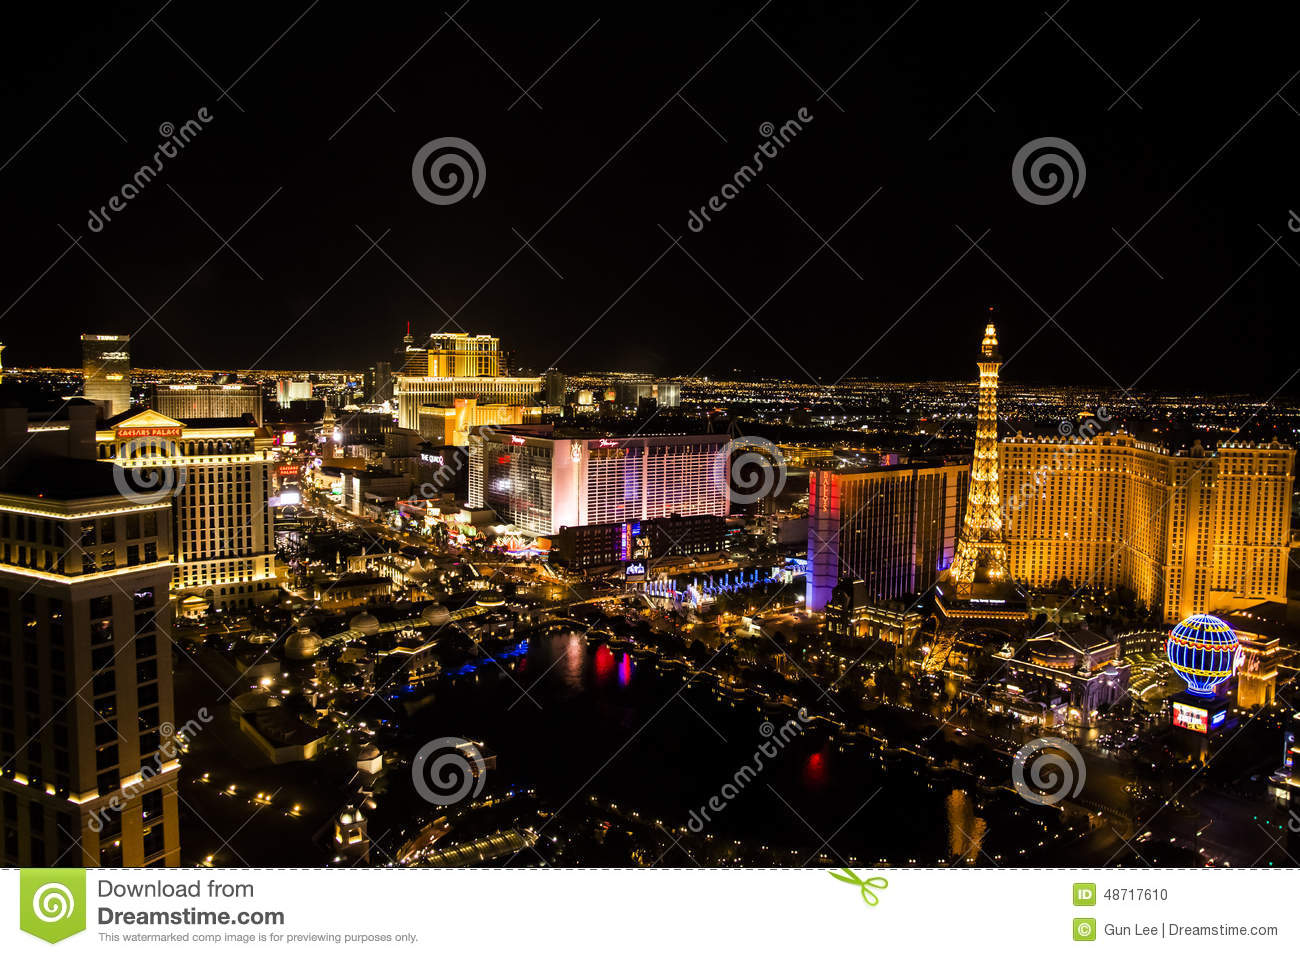 Vegas hotels on main strip